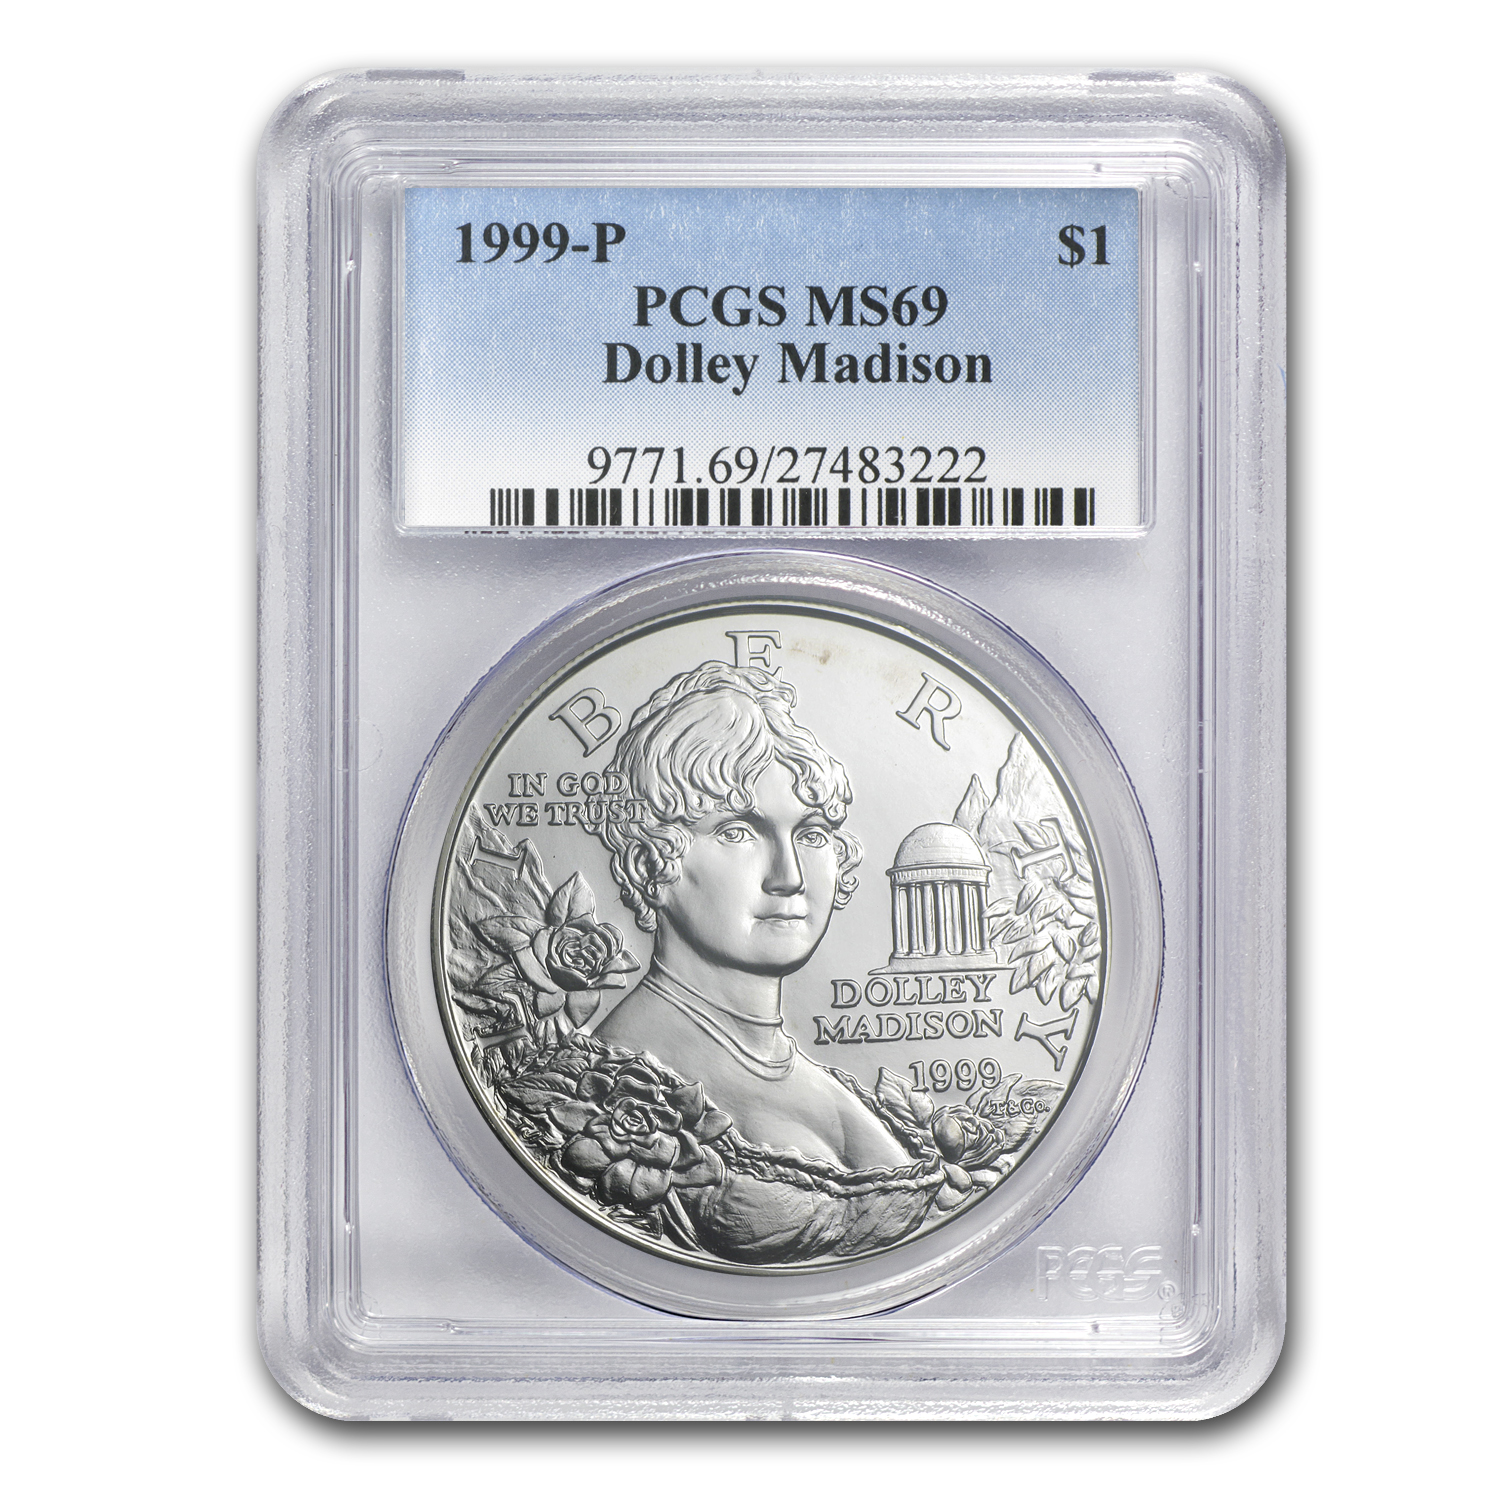 1999-P Dolley Madison $1 Silver Commemorative - MS-69 PCGS